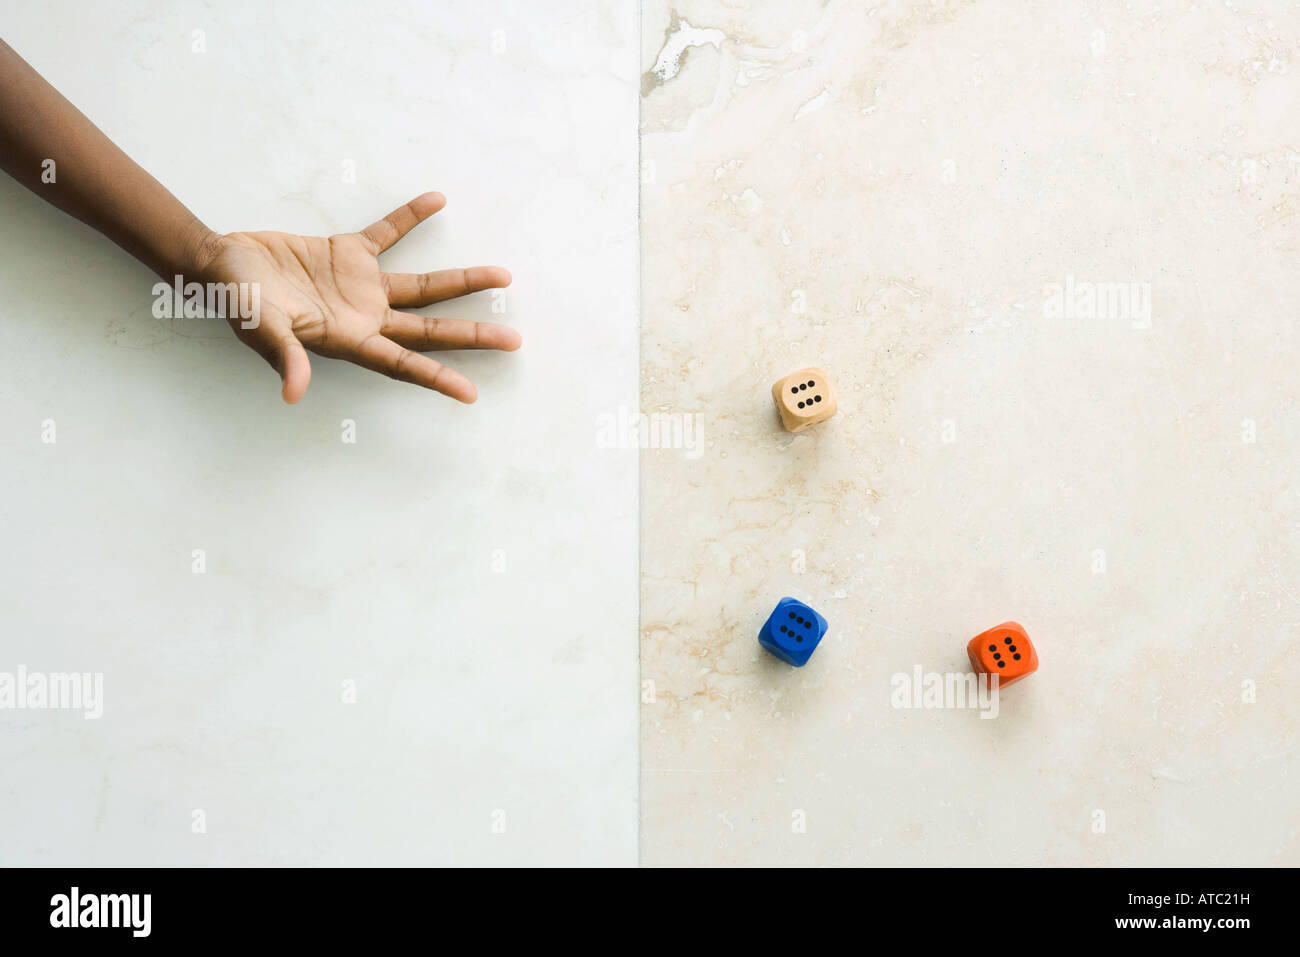 Child throwing dice, cropped view of hand - Stock Image